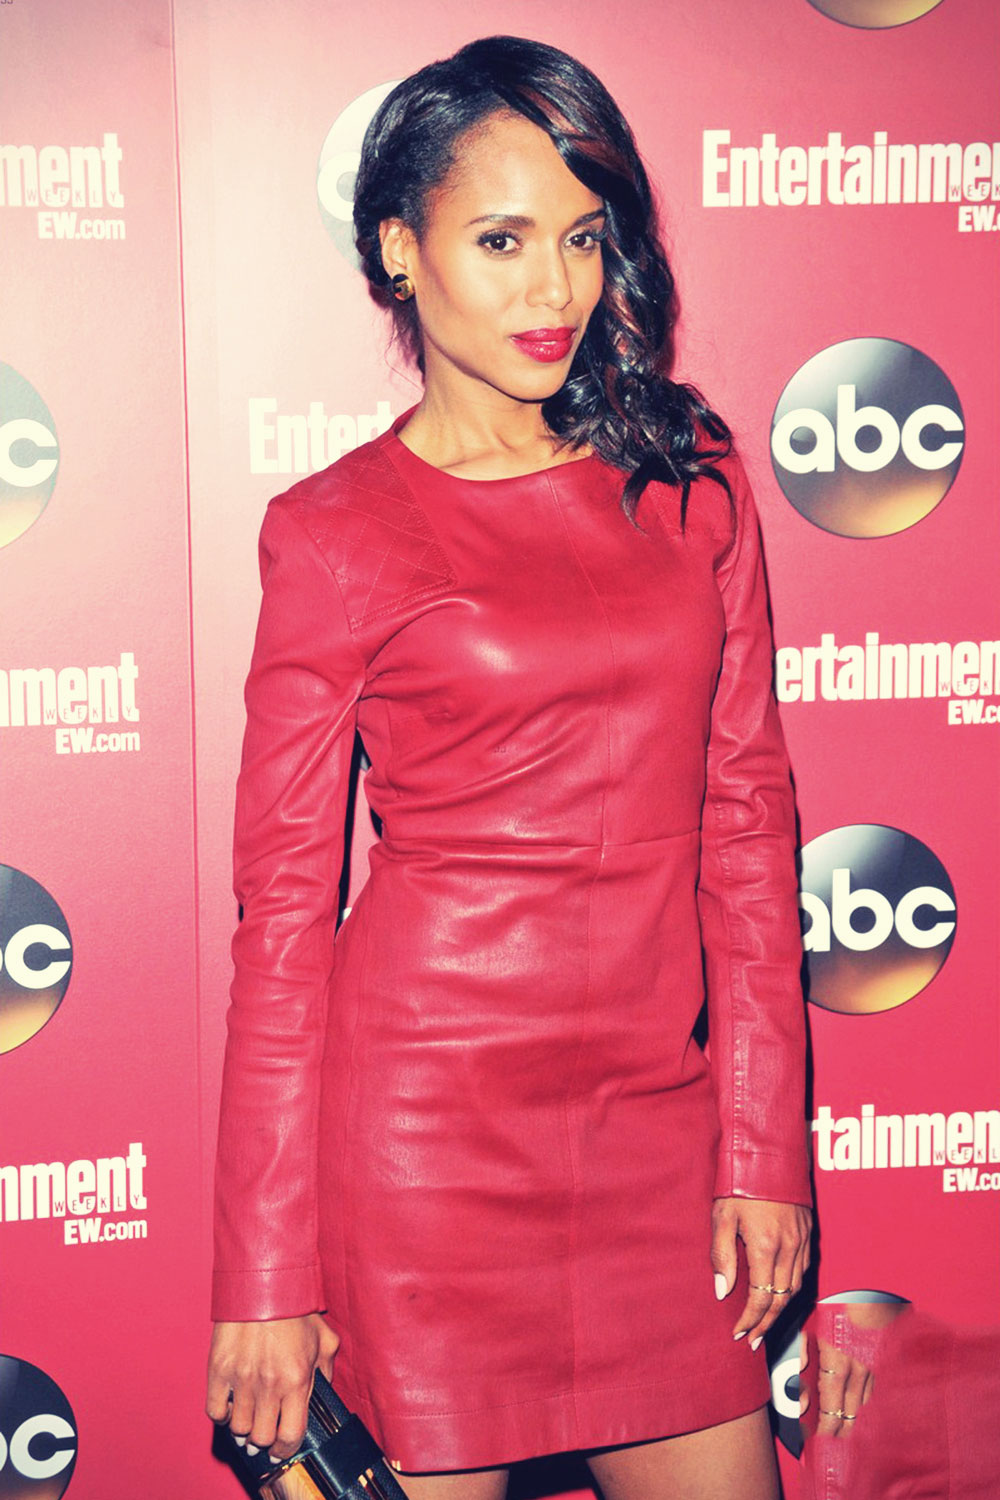 Kerry Washington attends the Entertainment Weekly & ABC Upfront Party